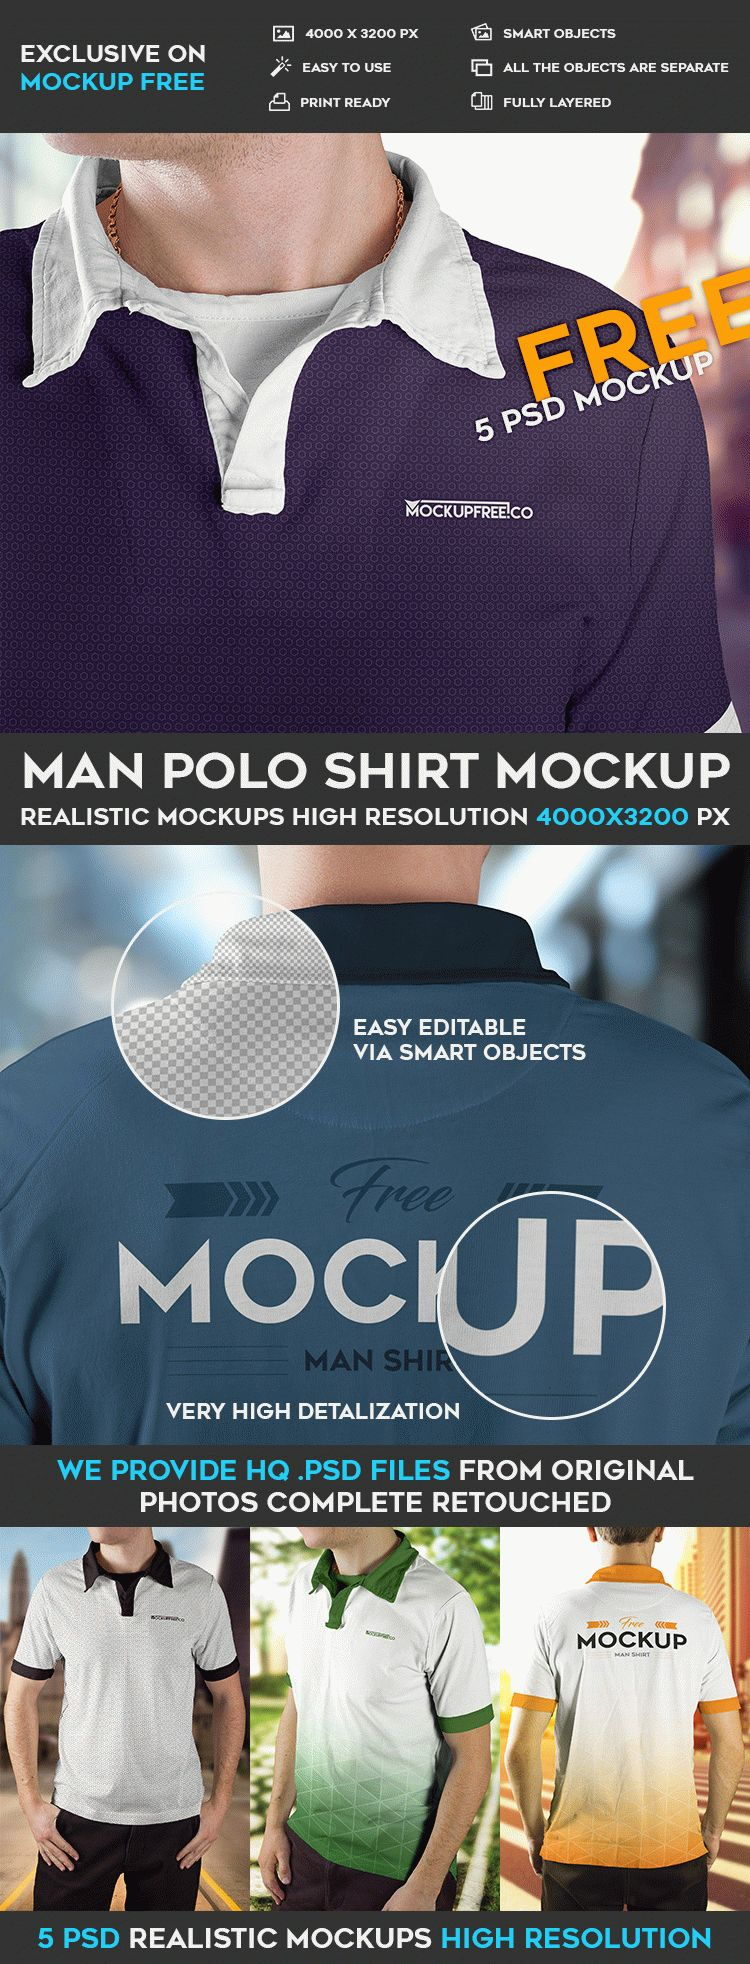 Men Polo shirts Mockup